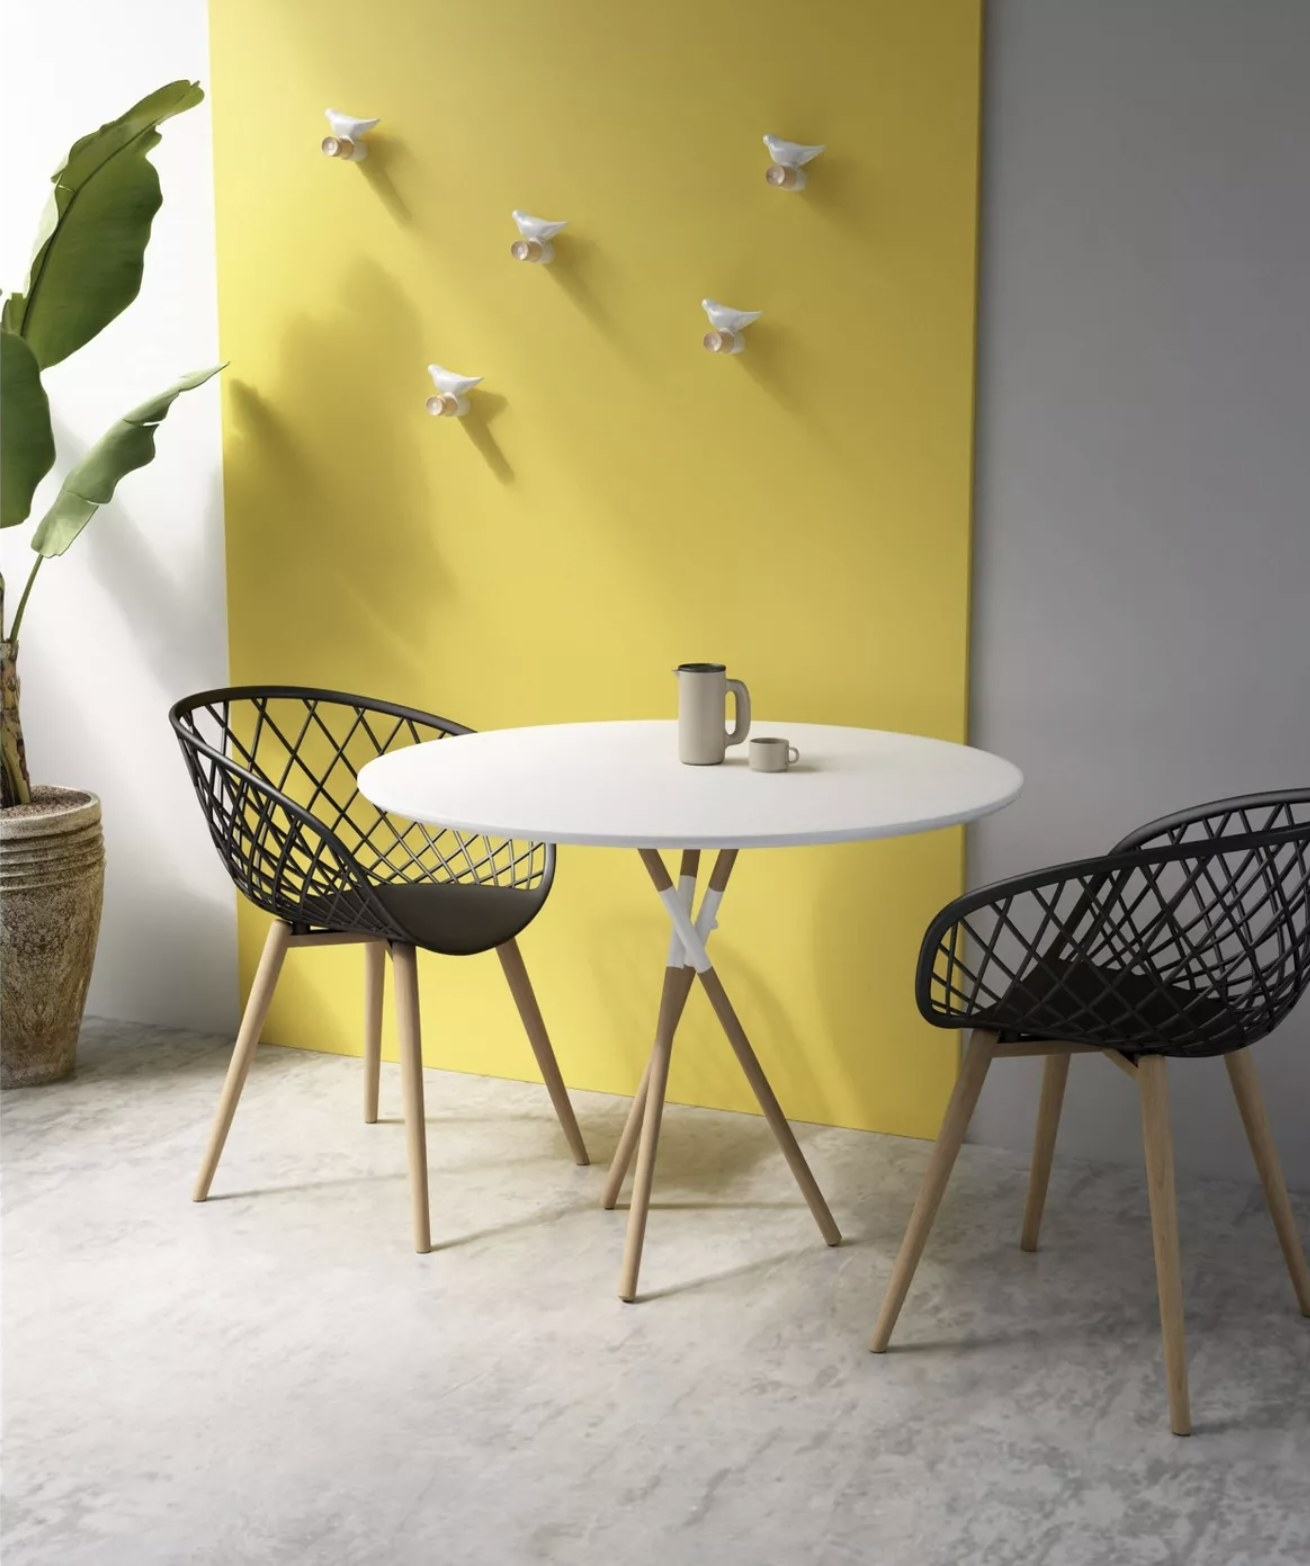 A white round dining table with three intersecting light wood legs